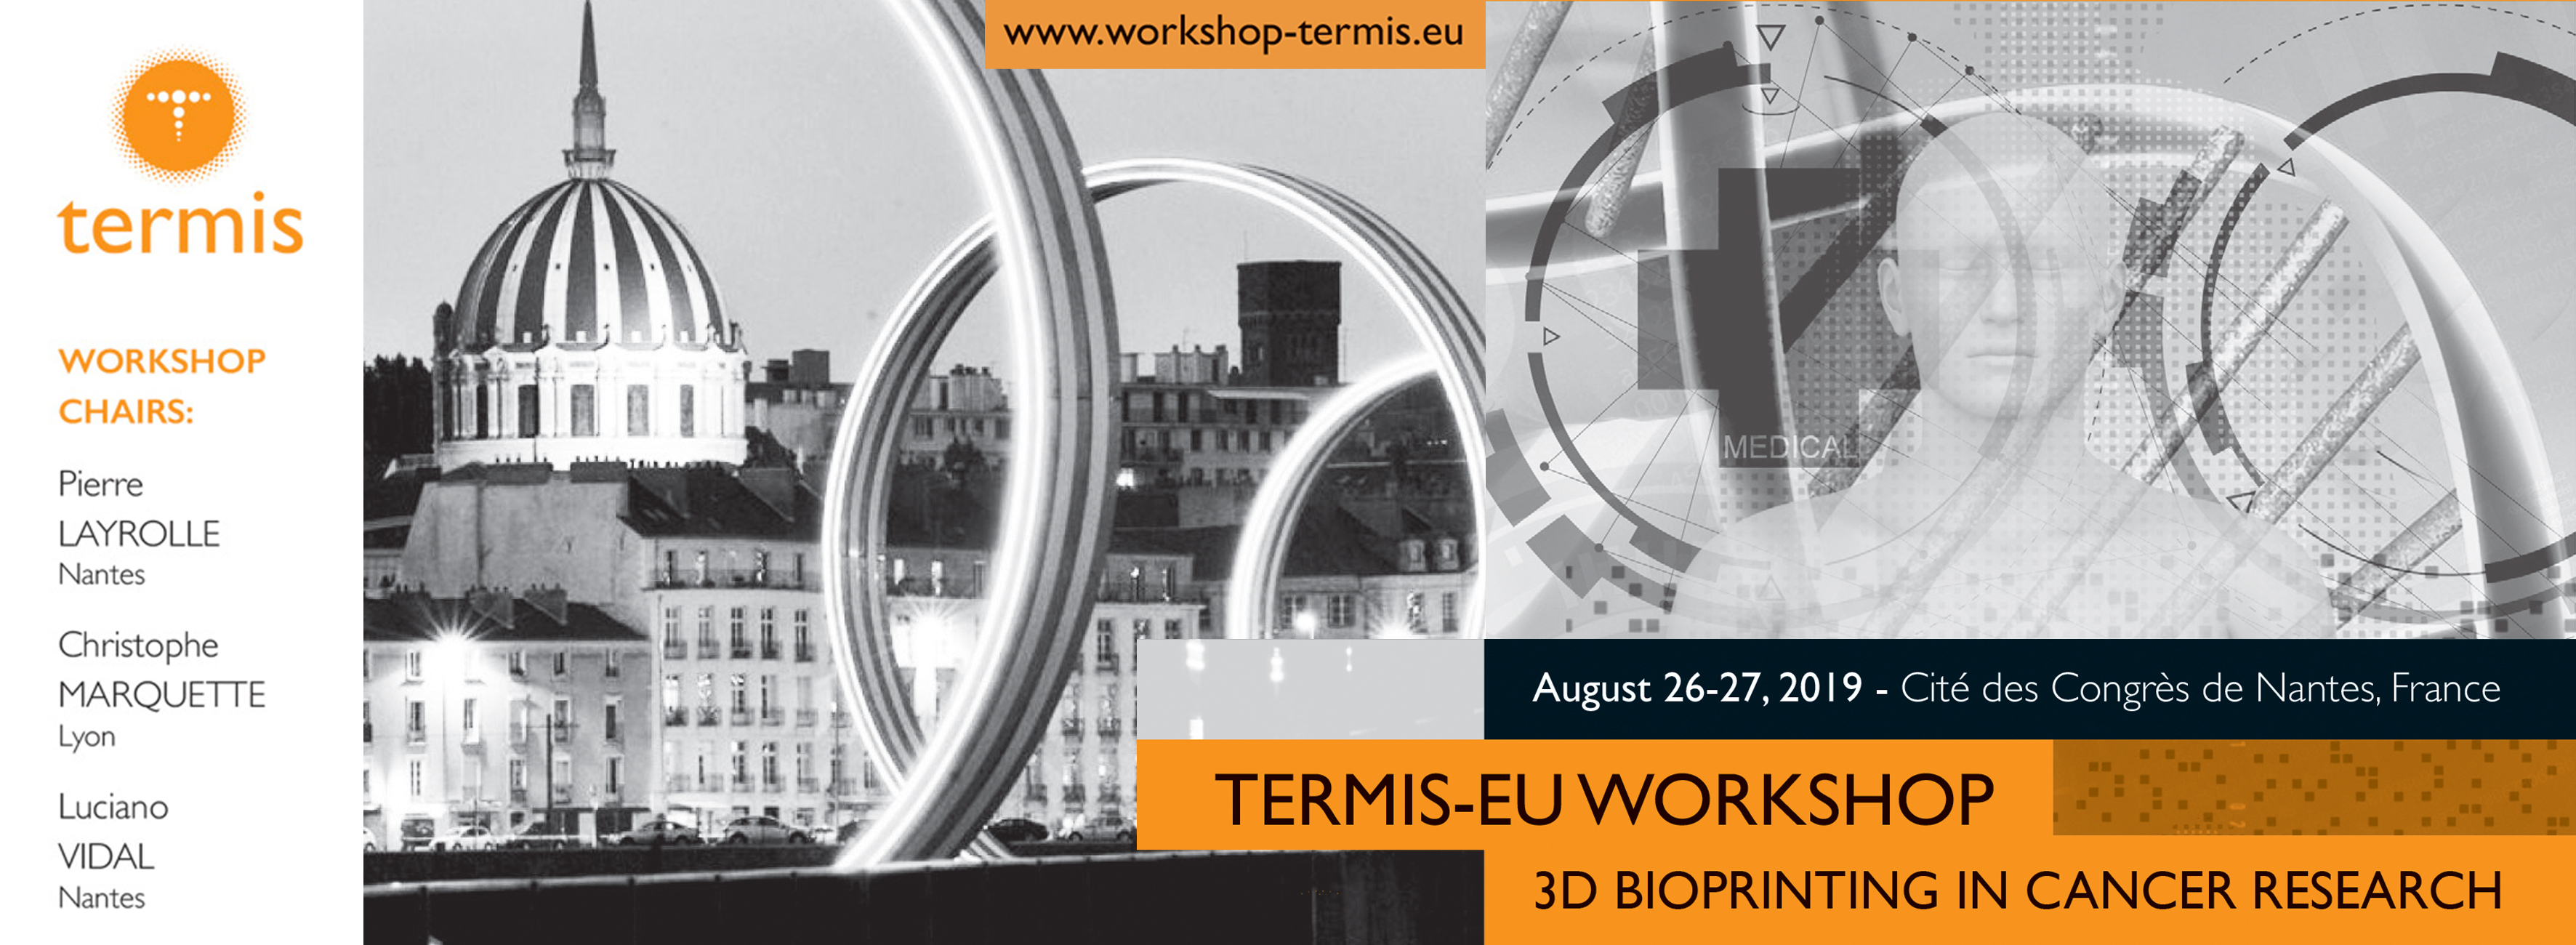 TERMIS - EU Workshop